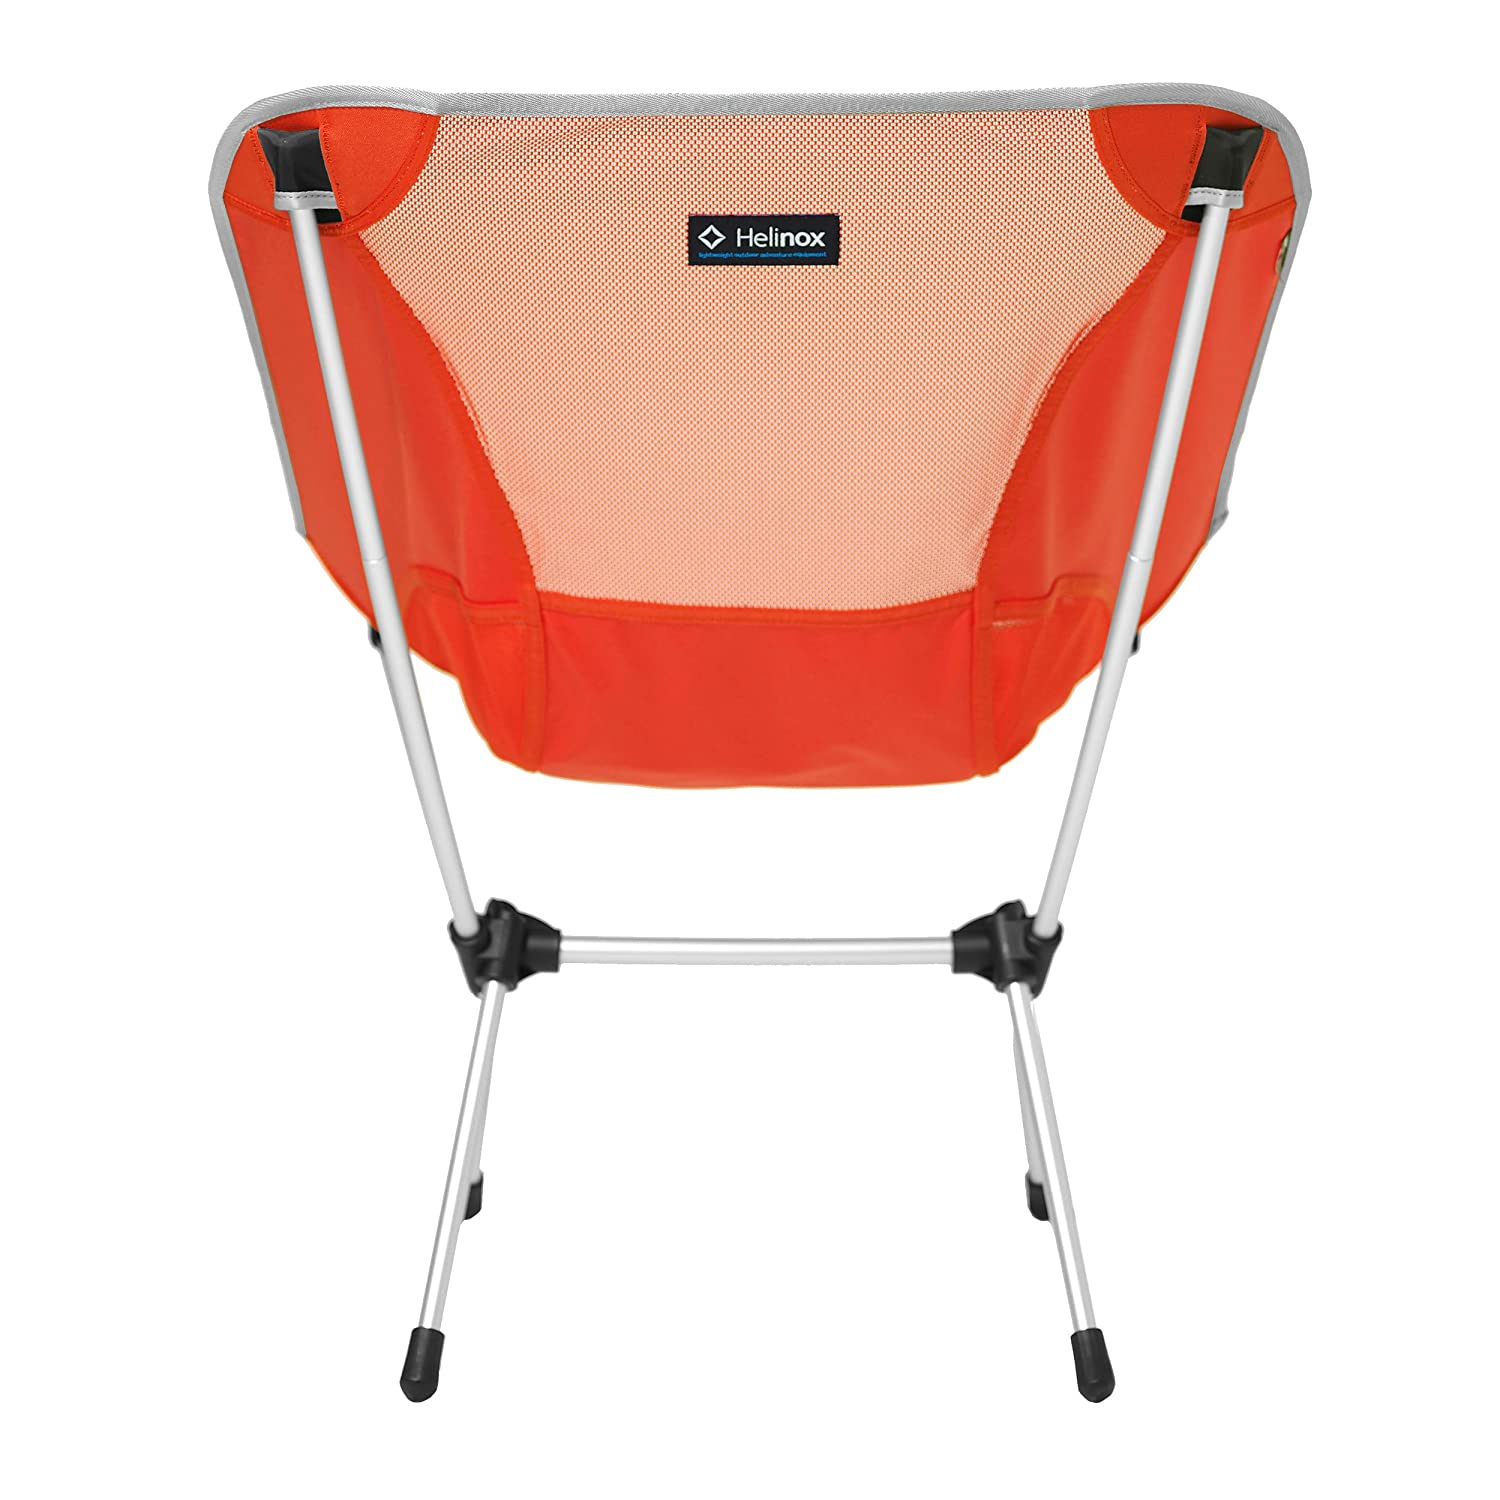 Collapsible Camping Chair Golden Poppy One Size Big Agnes Helinox Chair ONE Large Lightweight Portable